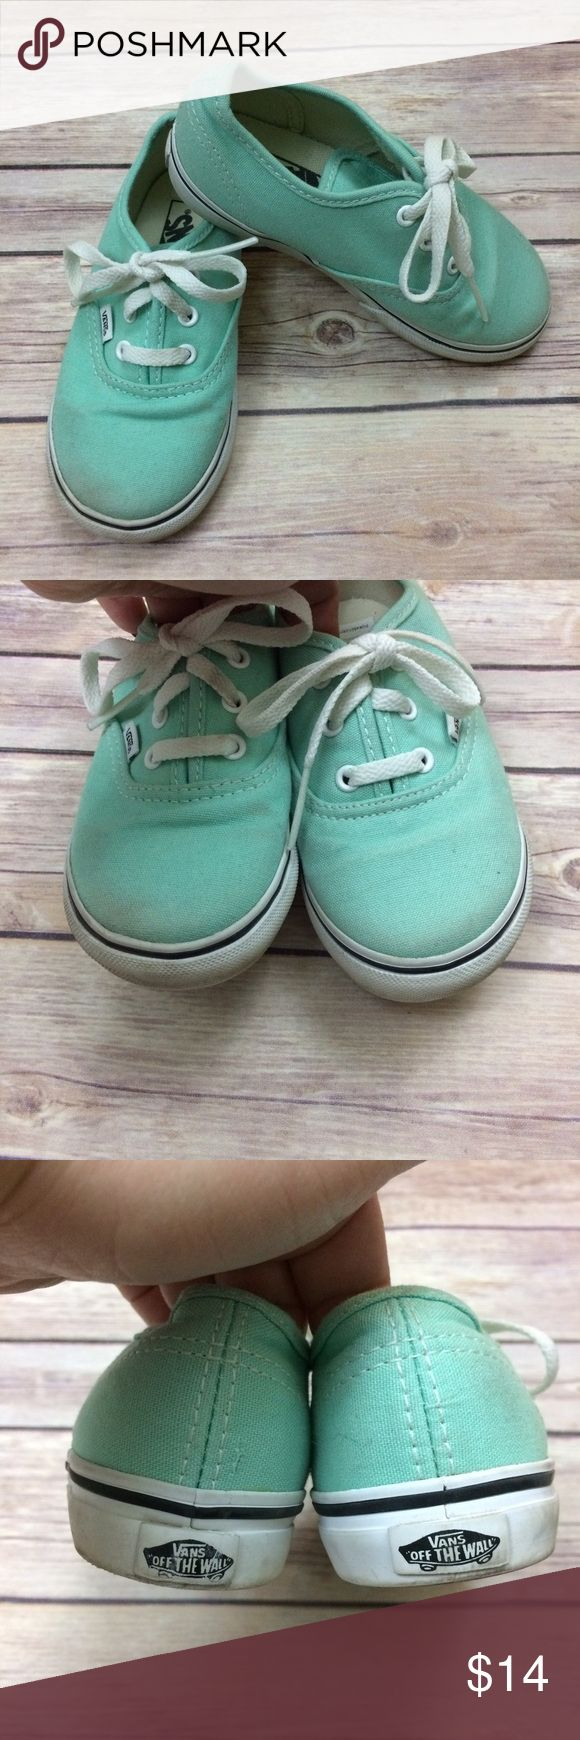 Vans Canvas Shoes Mint green laced canvas shoes. Needs a light cleaning, otherwise in excellent used condition. 12012 Vans Shoes Sneakers